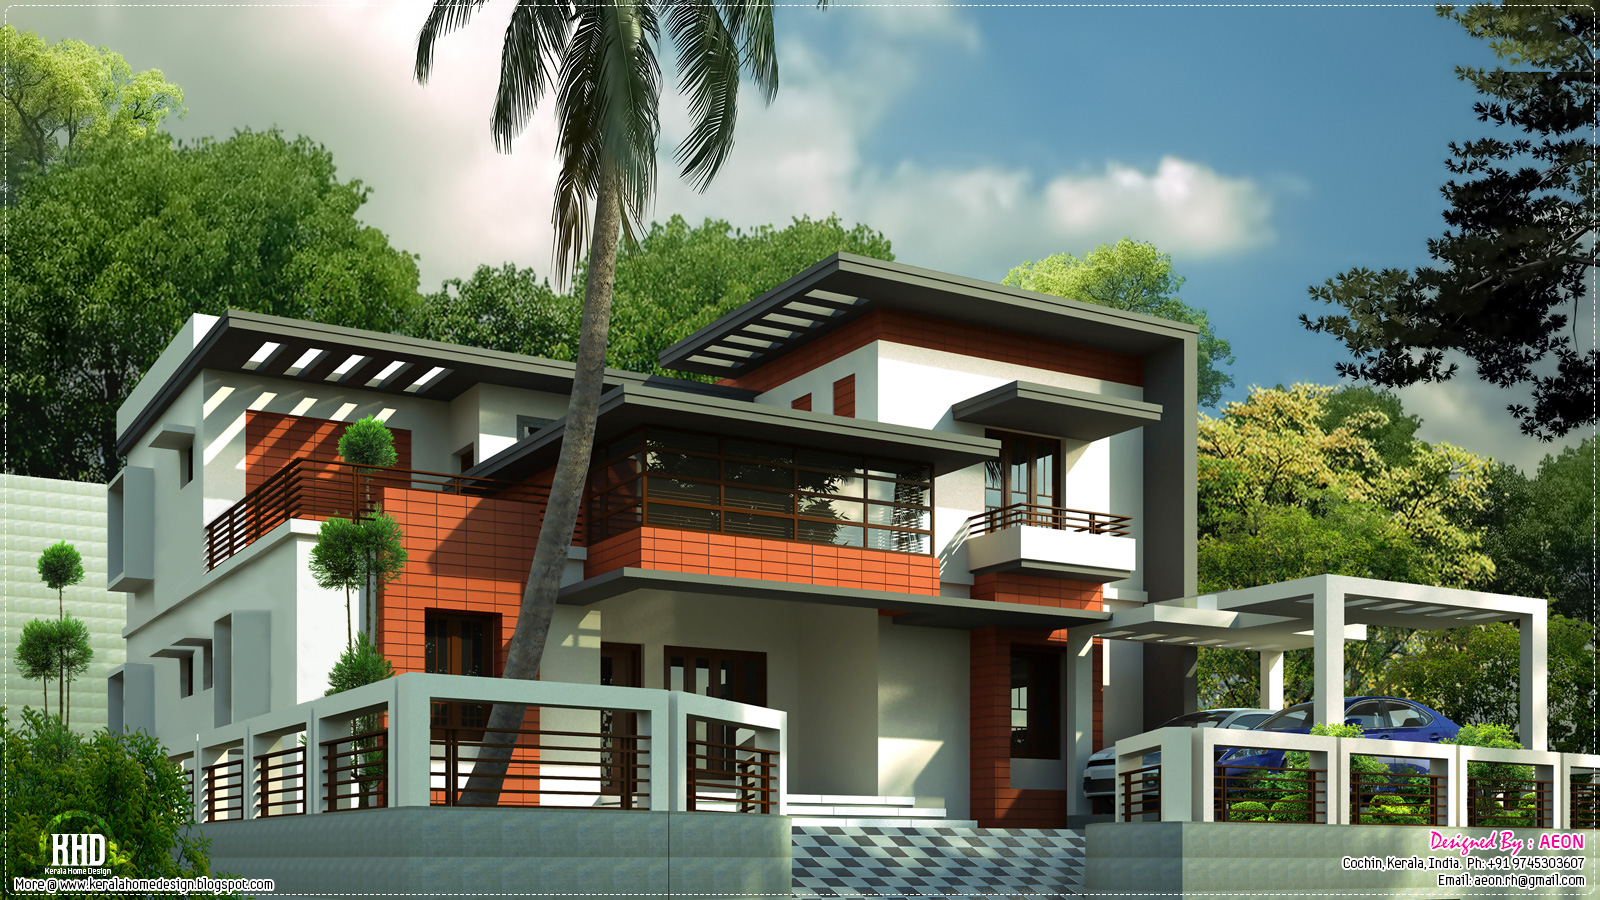 3400 sq feet contemporary home design kerala home for Kerala home designs contemporary